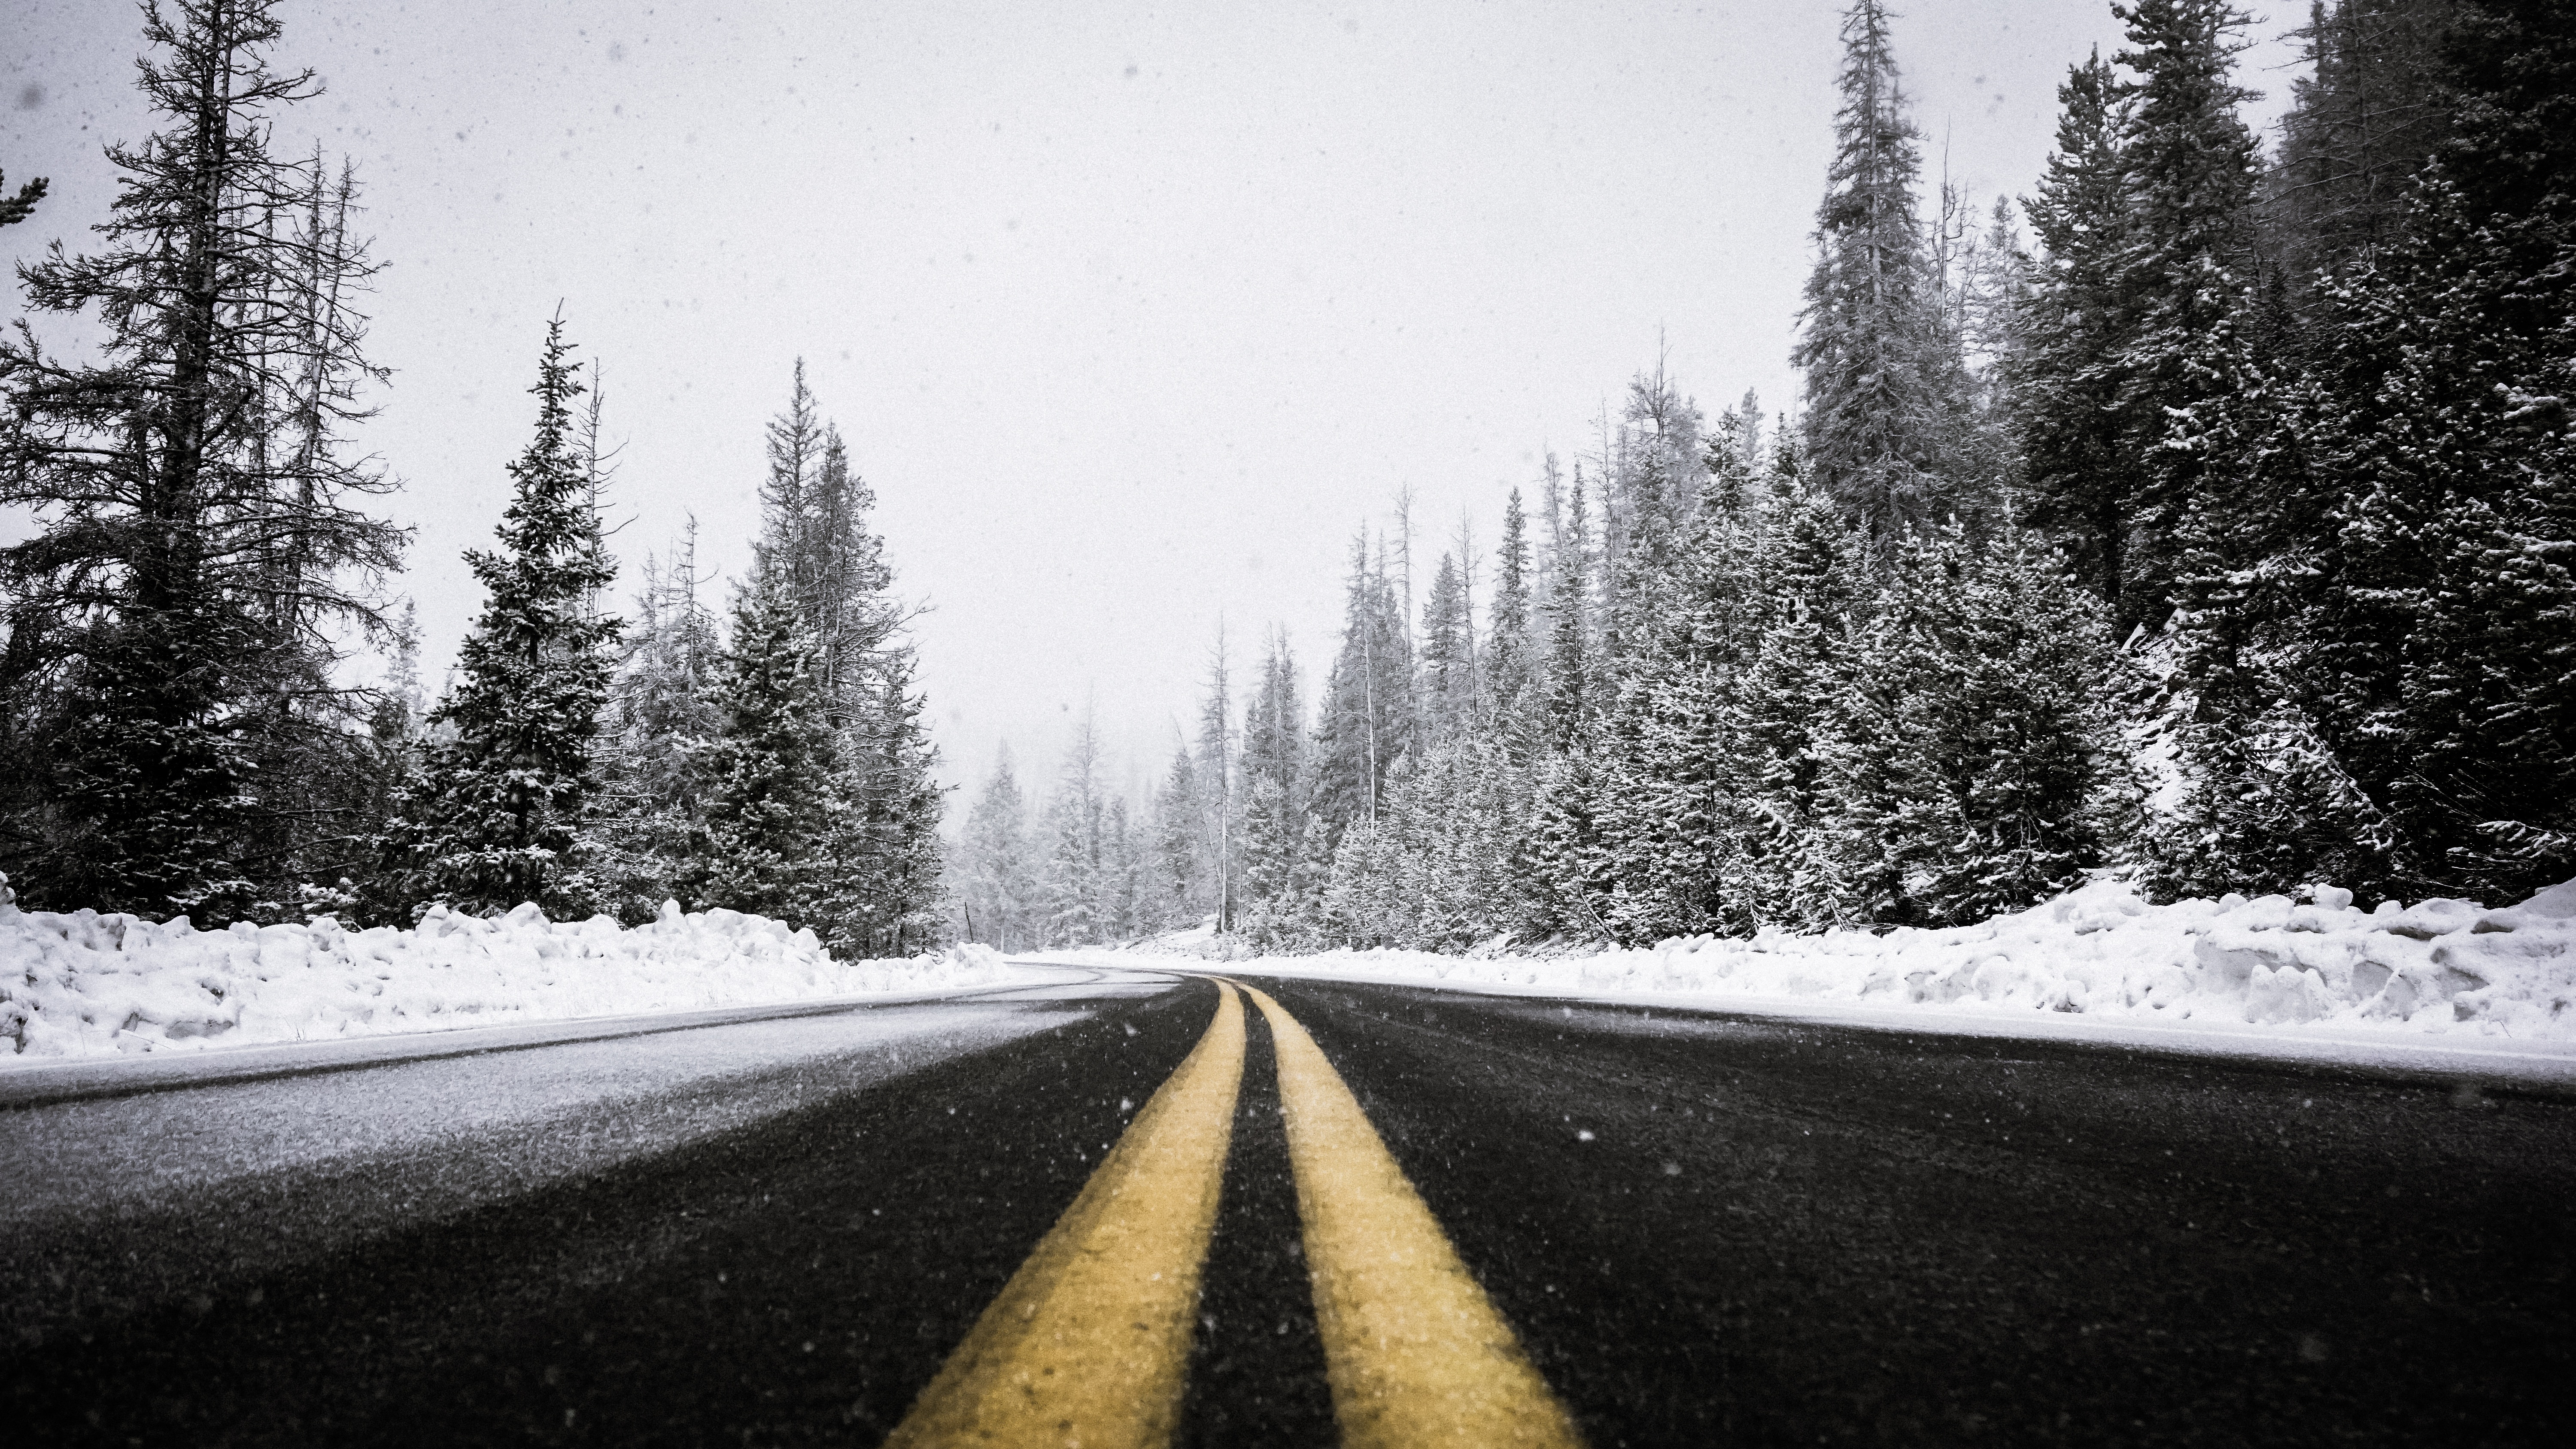 4 Hot Winter Road Trip Ideas To Add A Little Fire And